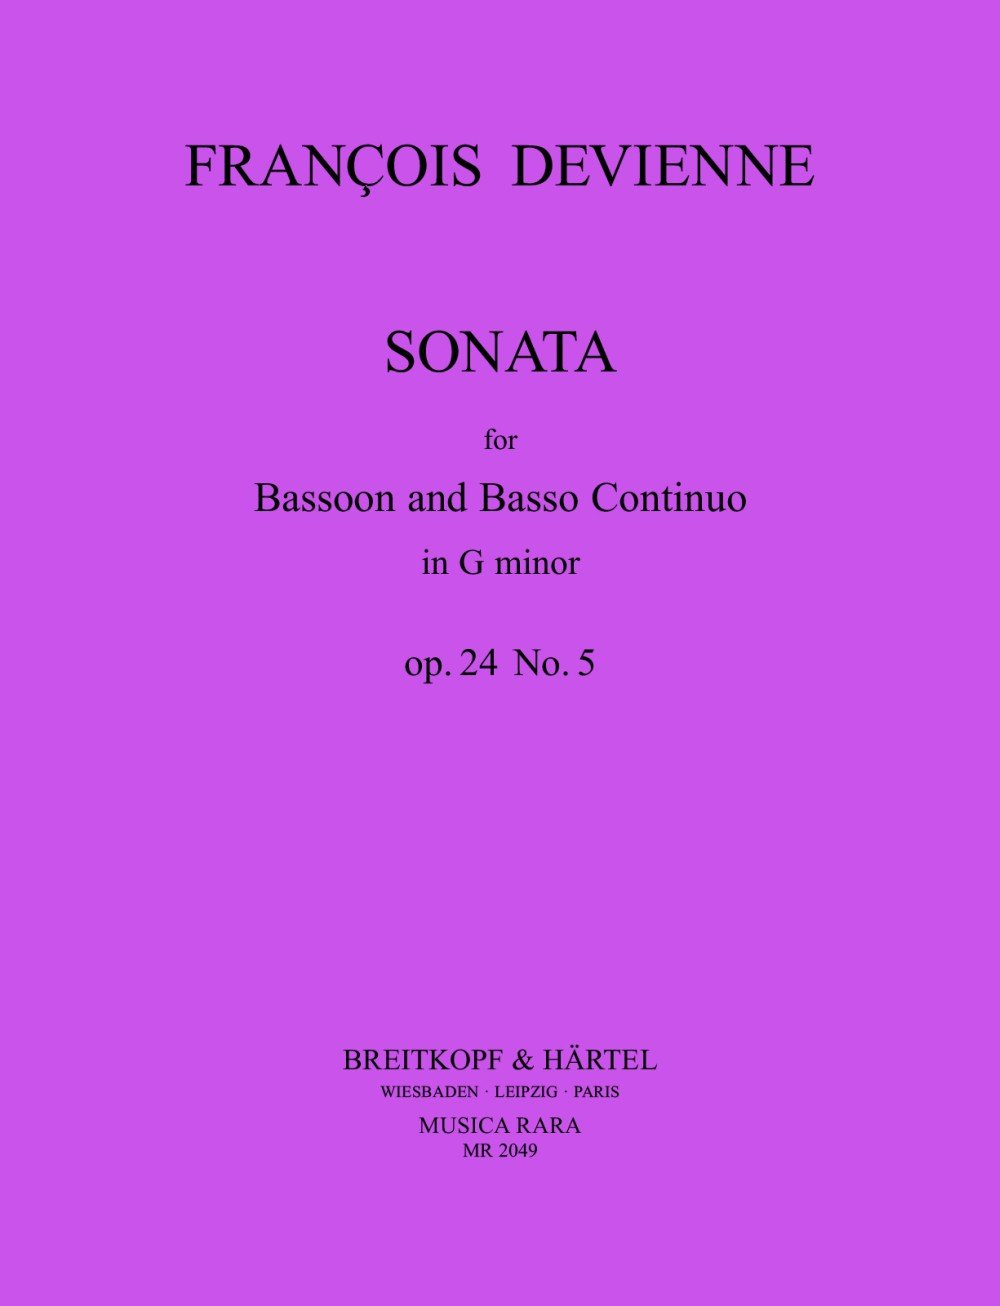 Sonate in G Op. 24 Nr. 5 (Allemand) Partition – 1 janvier 2000 François Devienne Breitkopf B007DGRSSG MR2049